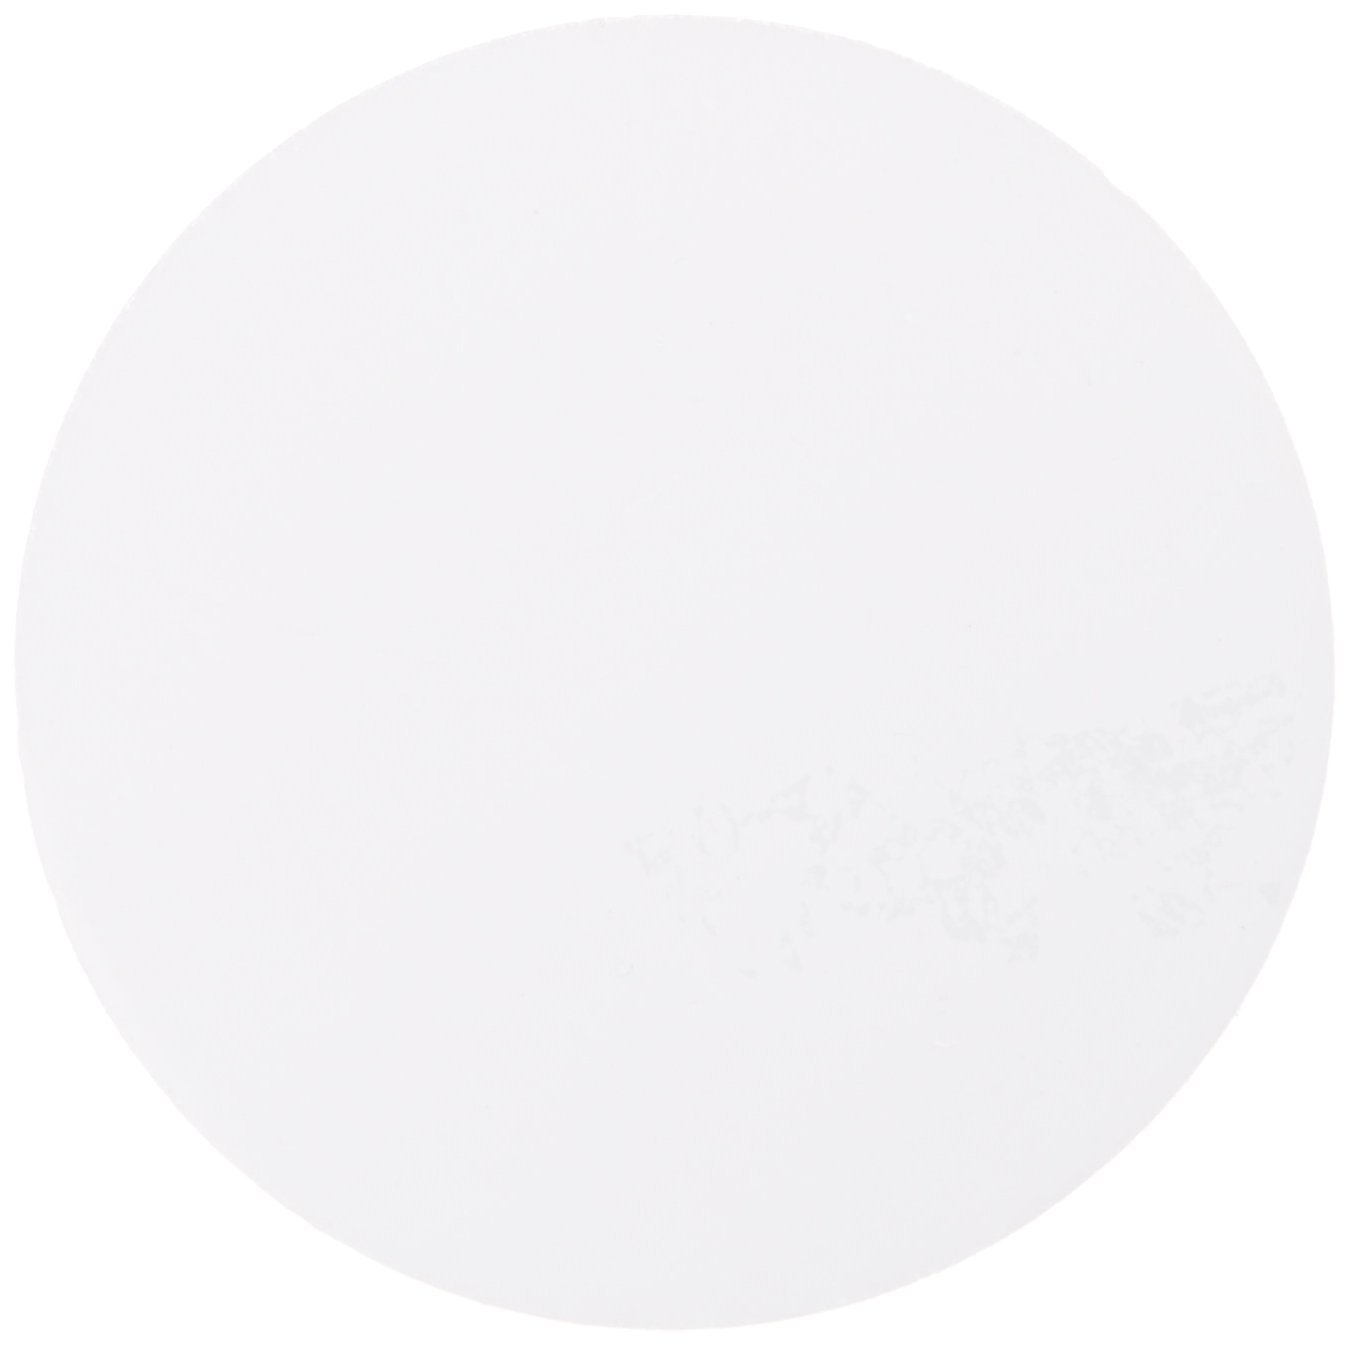 Maine 1215605 Polycarbonate Track Etched Membrane Disks, 0.1 micron Pore Size, 13mm Diameter (Pack of 100) Thomas Scientific